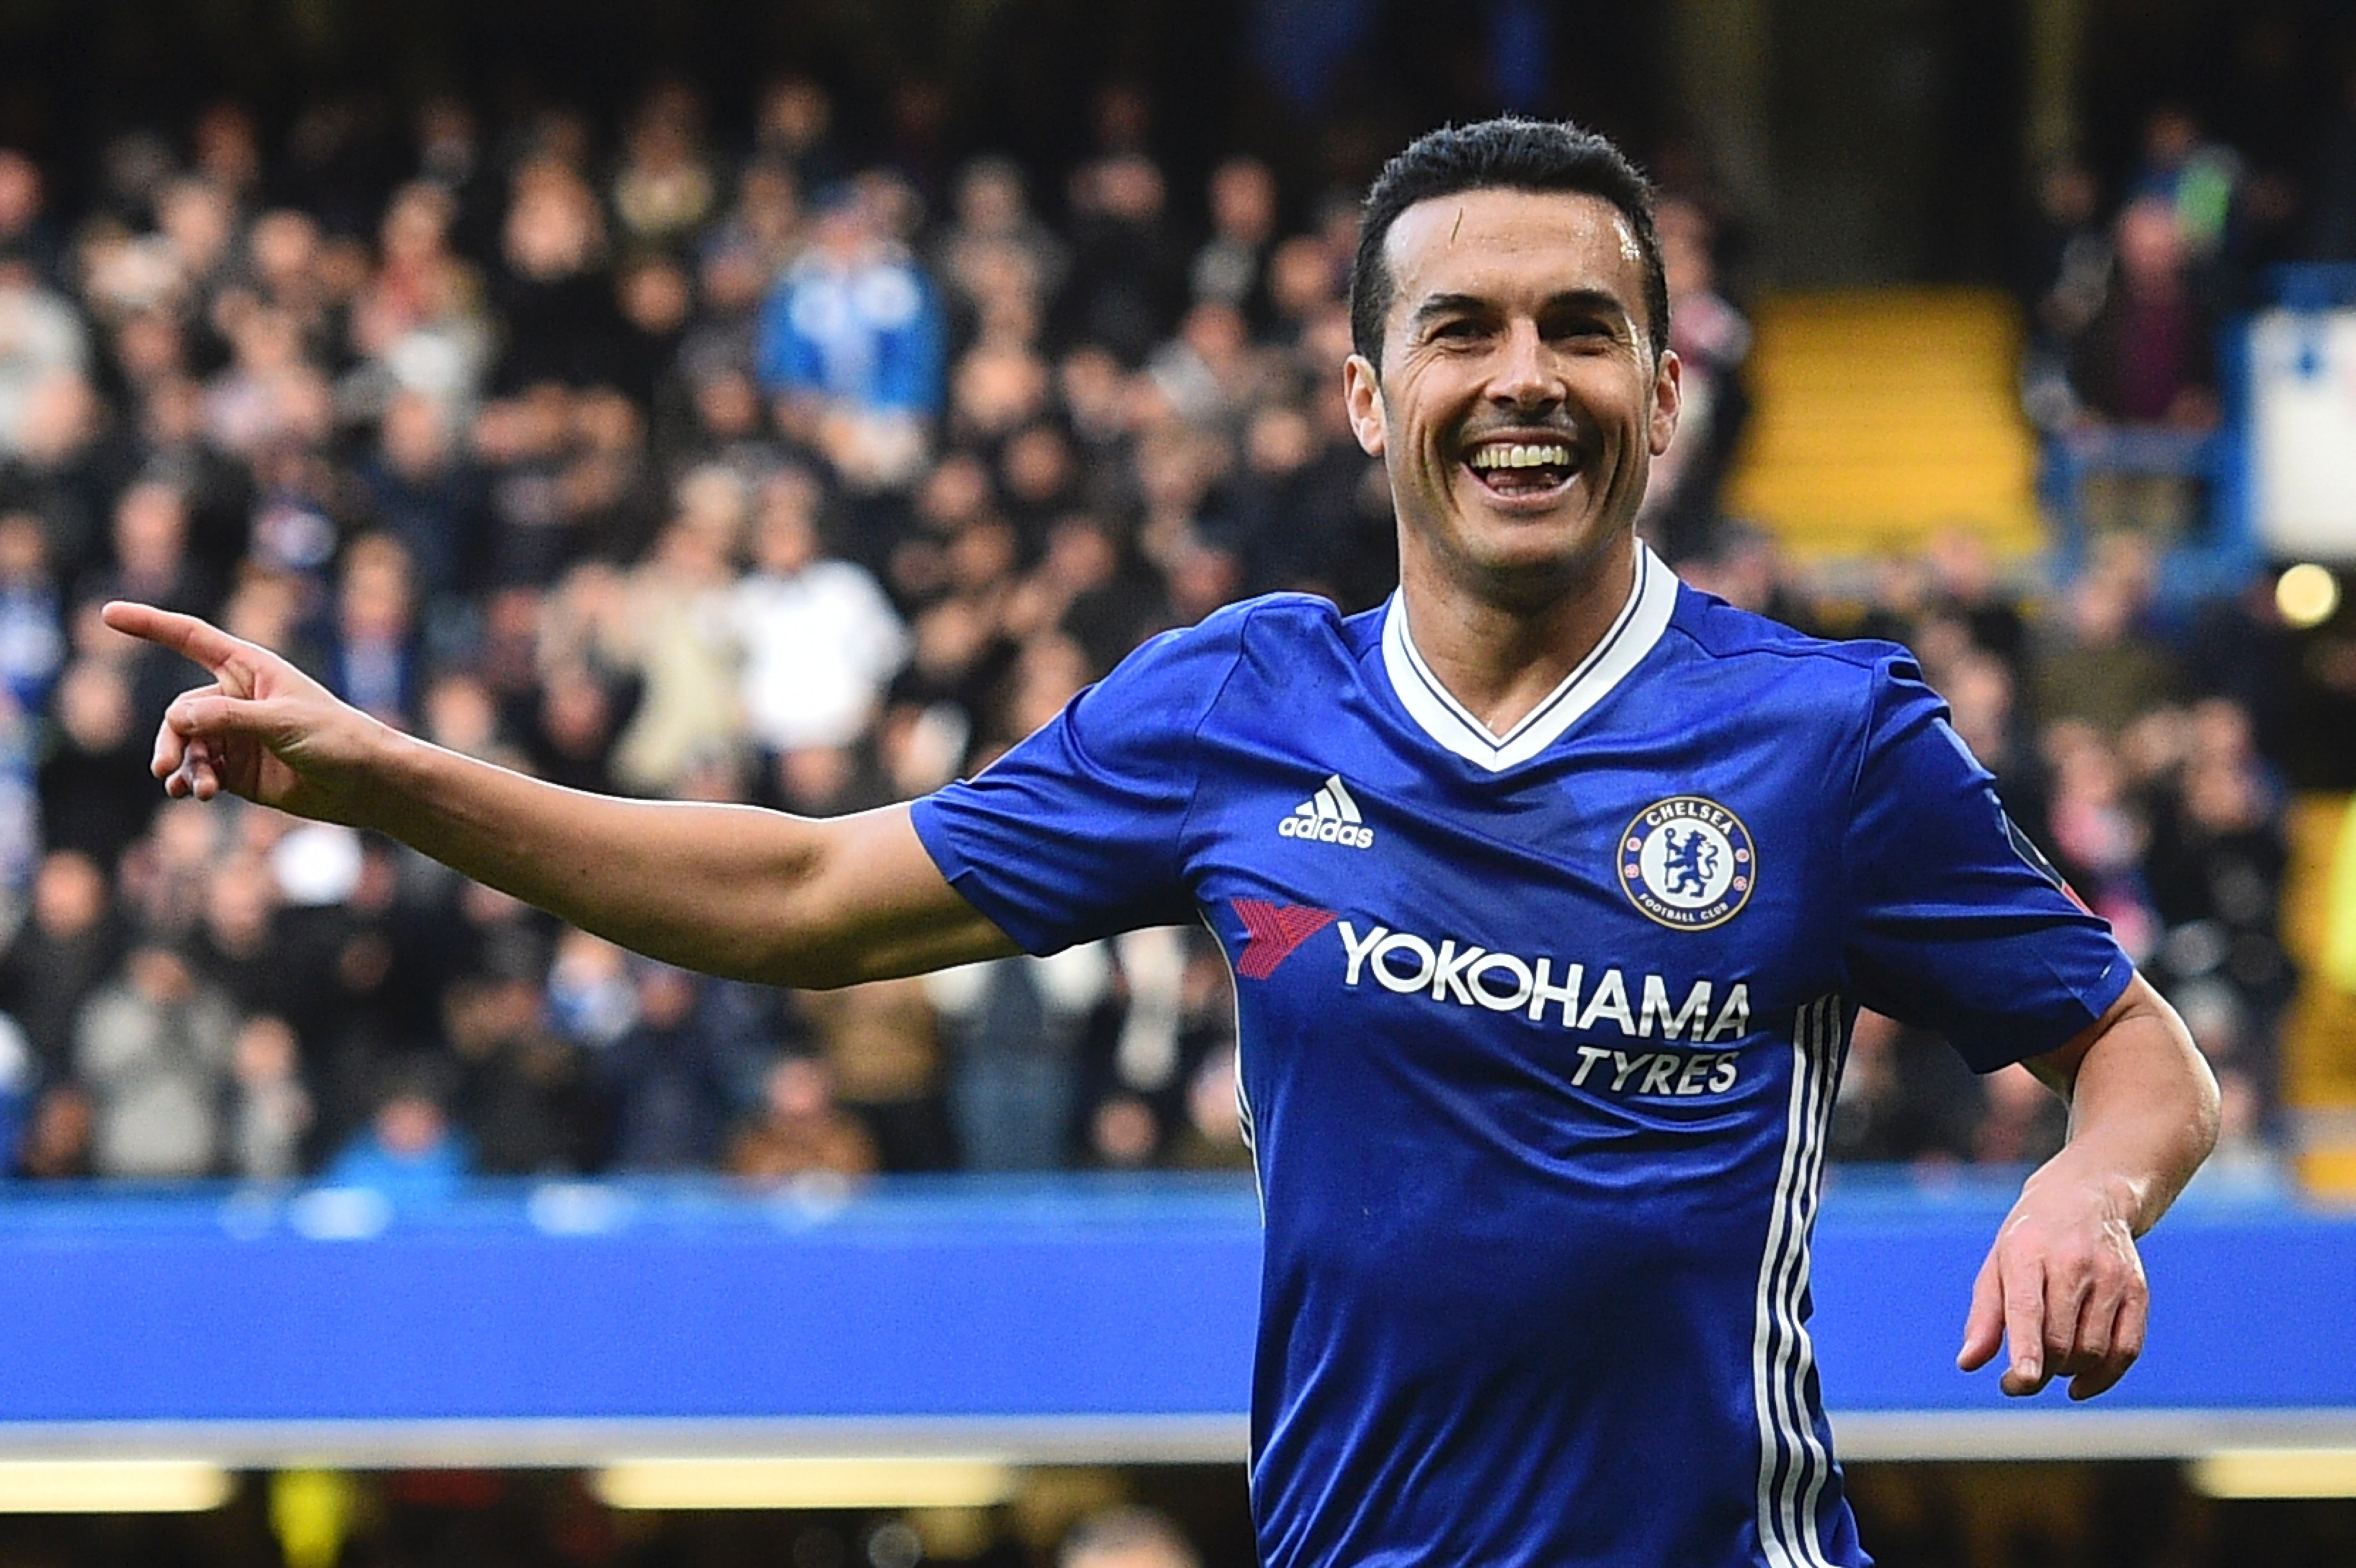 Chelsea's Spanish midfielder Pedro celebrates scoring their second goal during the English FA Cup fourth round football match between Chelsea and Brentford at Stamford Bridge in London on January 28, 2017. / AFP / Glyn KIRK / RESTRICTED TO EDITORIAL USE. No use with unauthorized audio, video, data, fixture lists, club/league logos or 'live' services. Online in-match use limited to 75 images, no video emulation. No use in betting, games or single club/league/player publications. / (Photo credit should read GLYN KIRK/AFP/Getty Images)